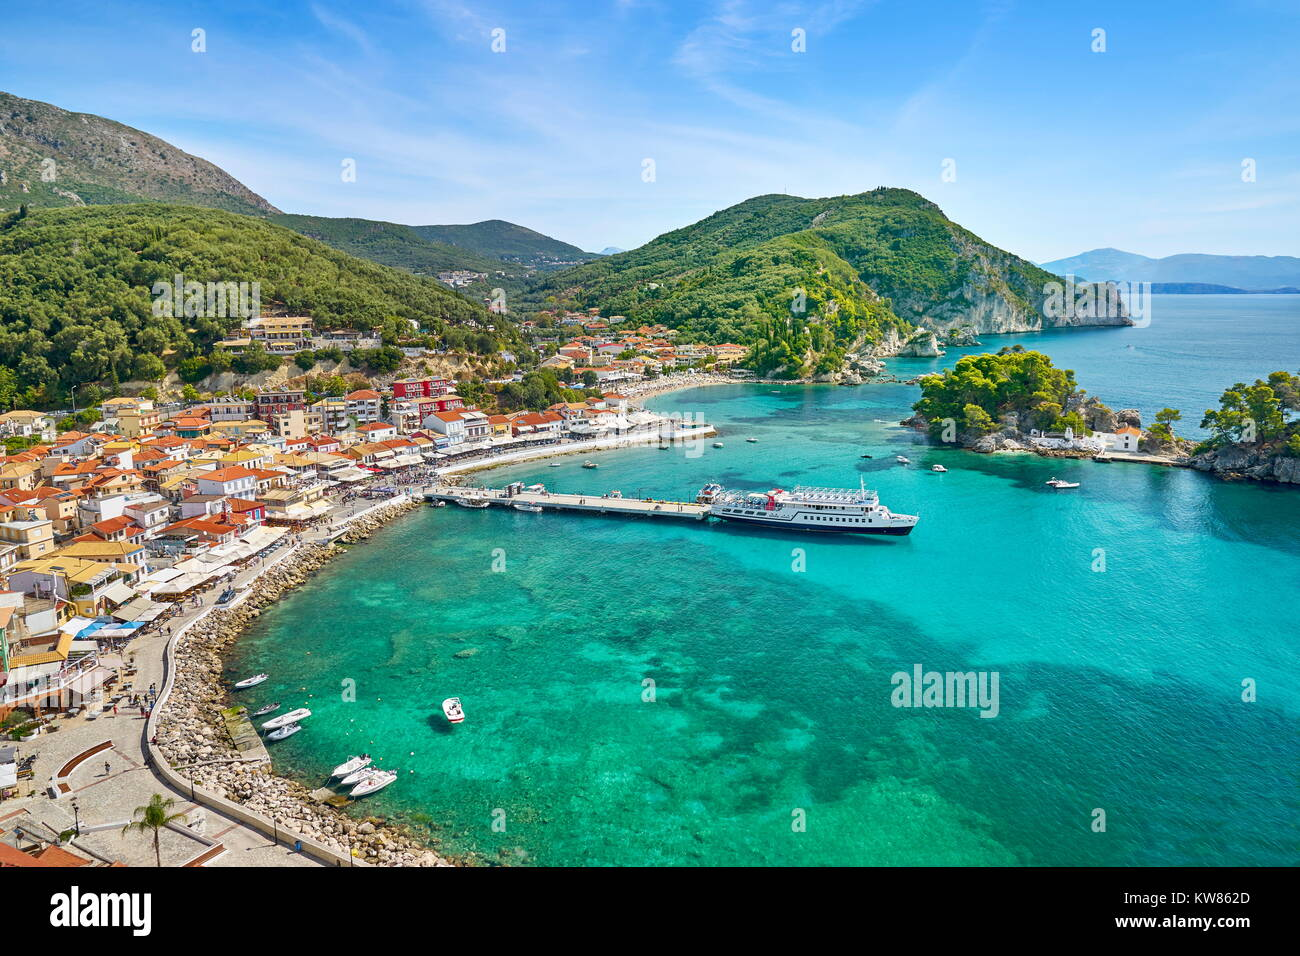 Aerial view of Parga, Greece - Stock Image